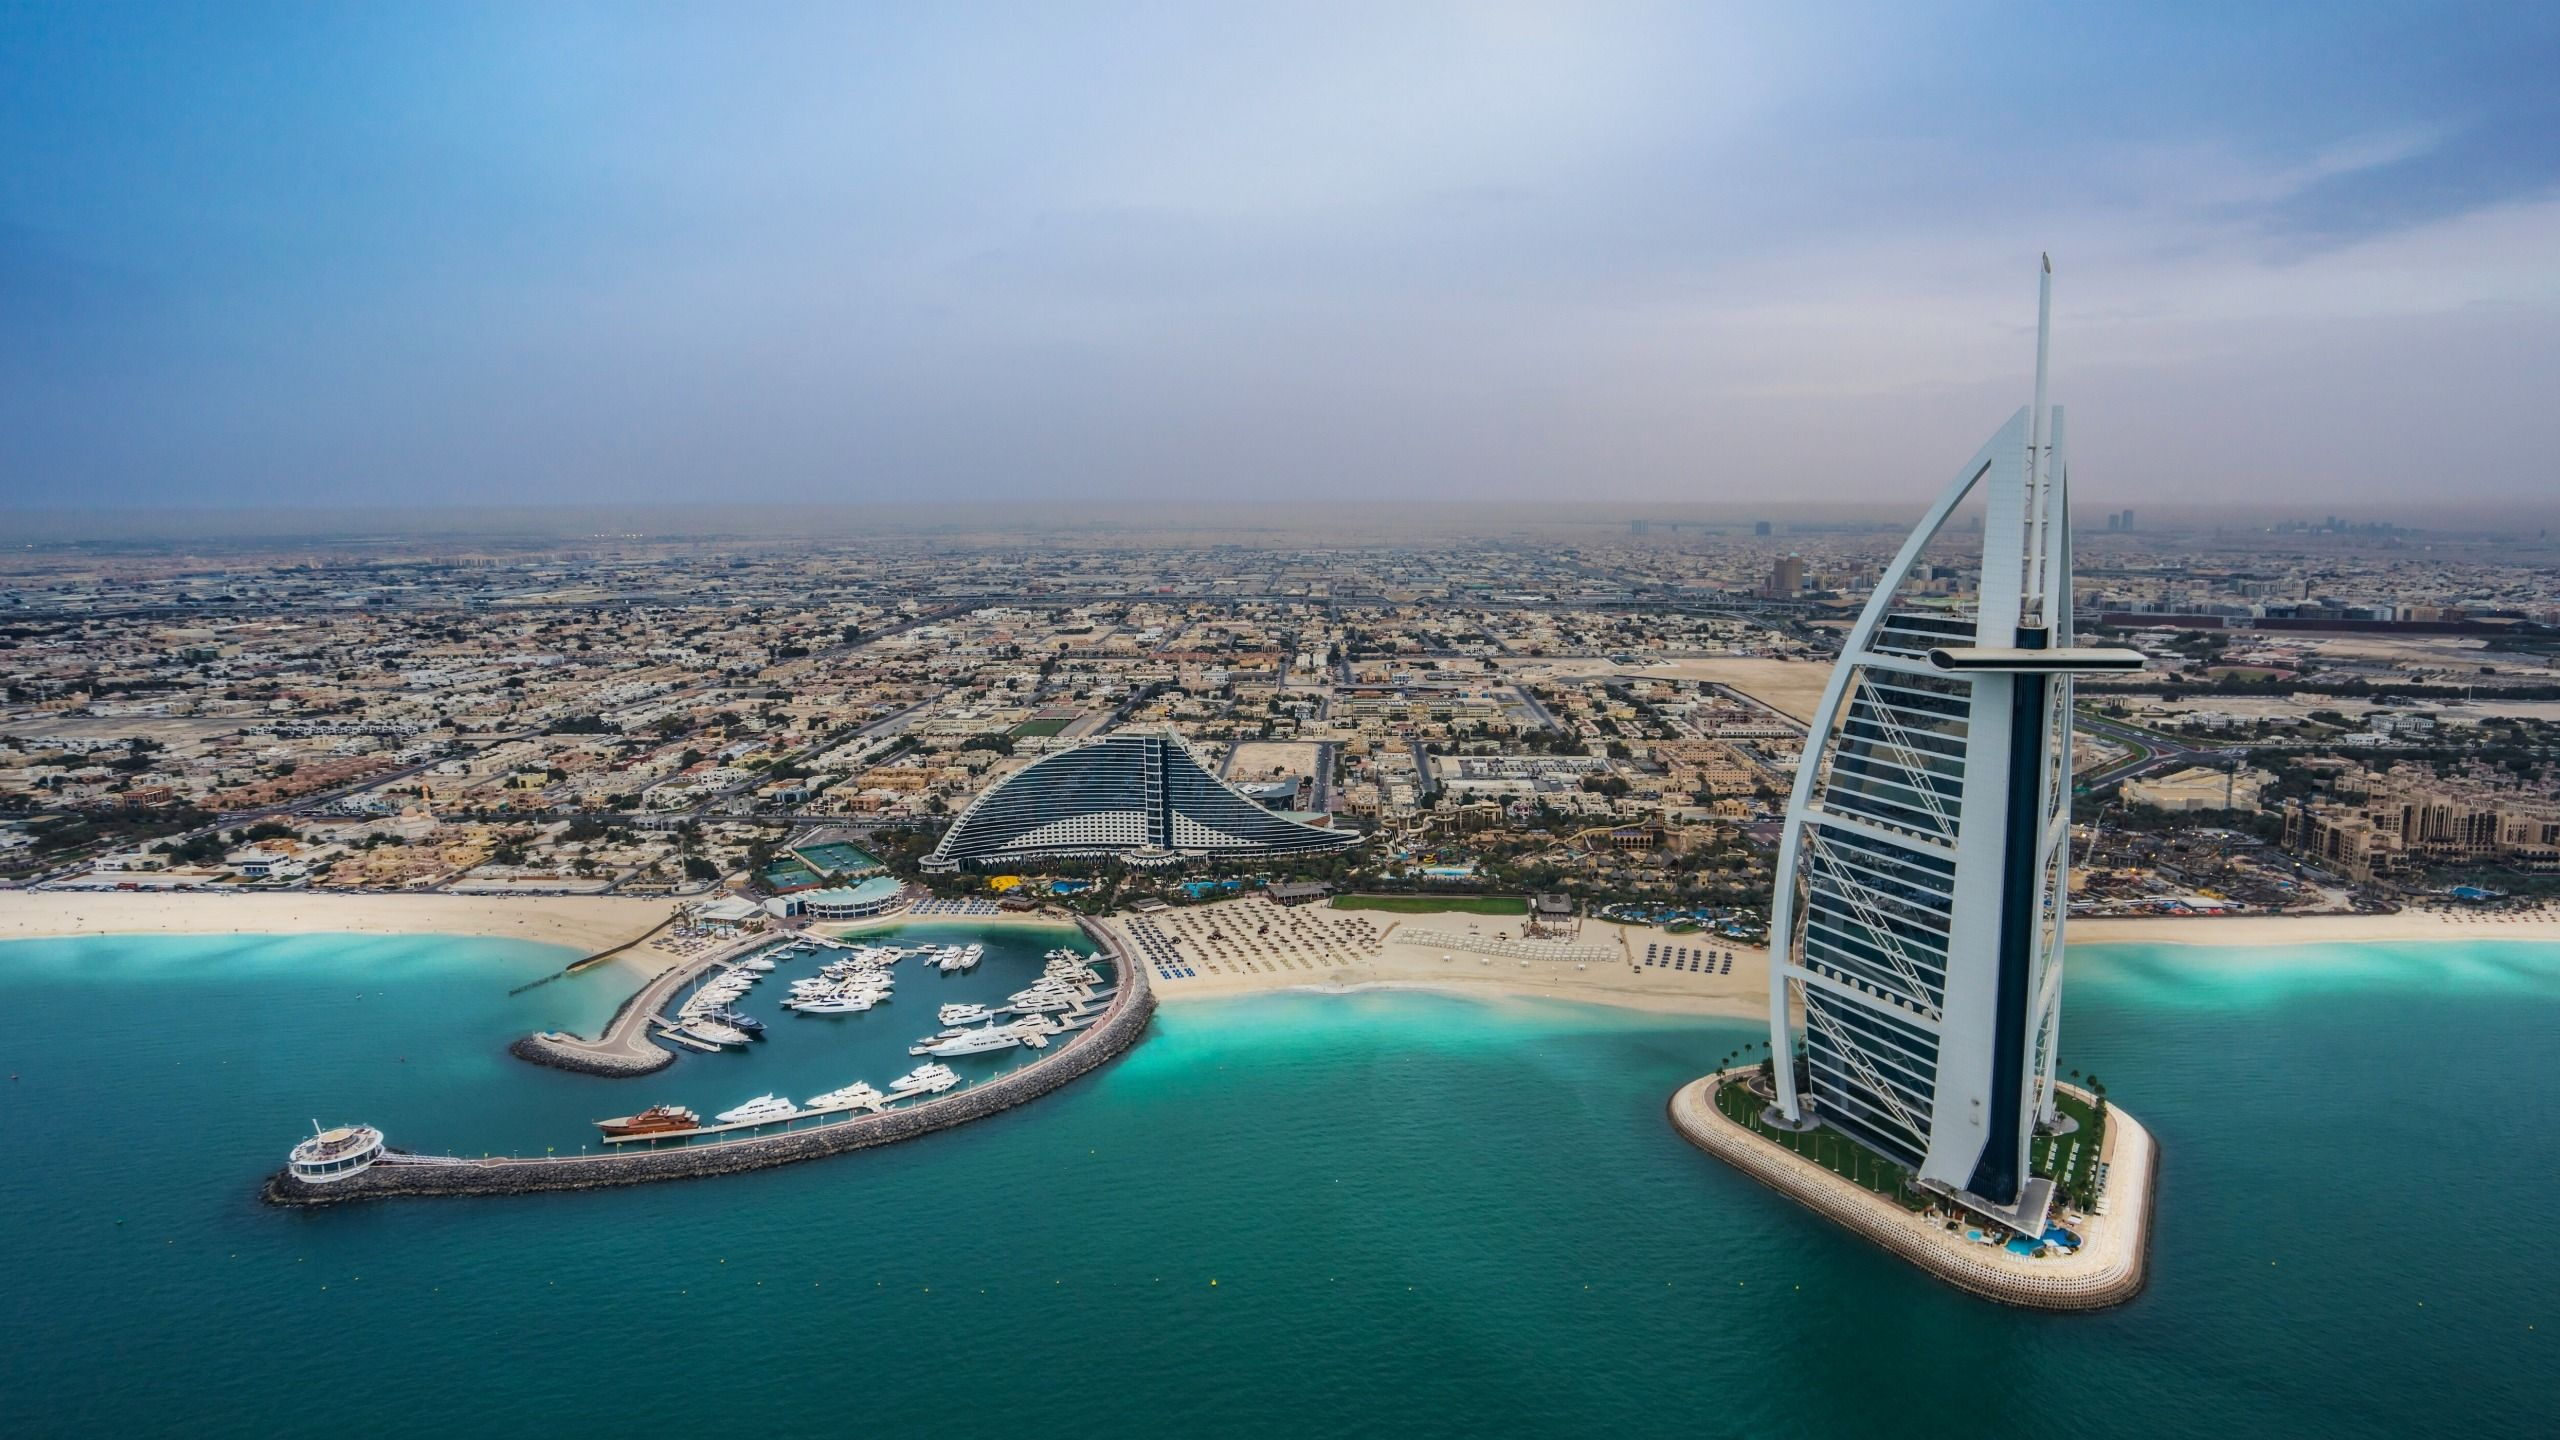 dubai hd wallpapers for mobile